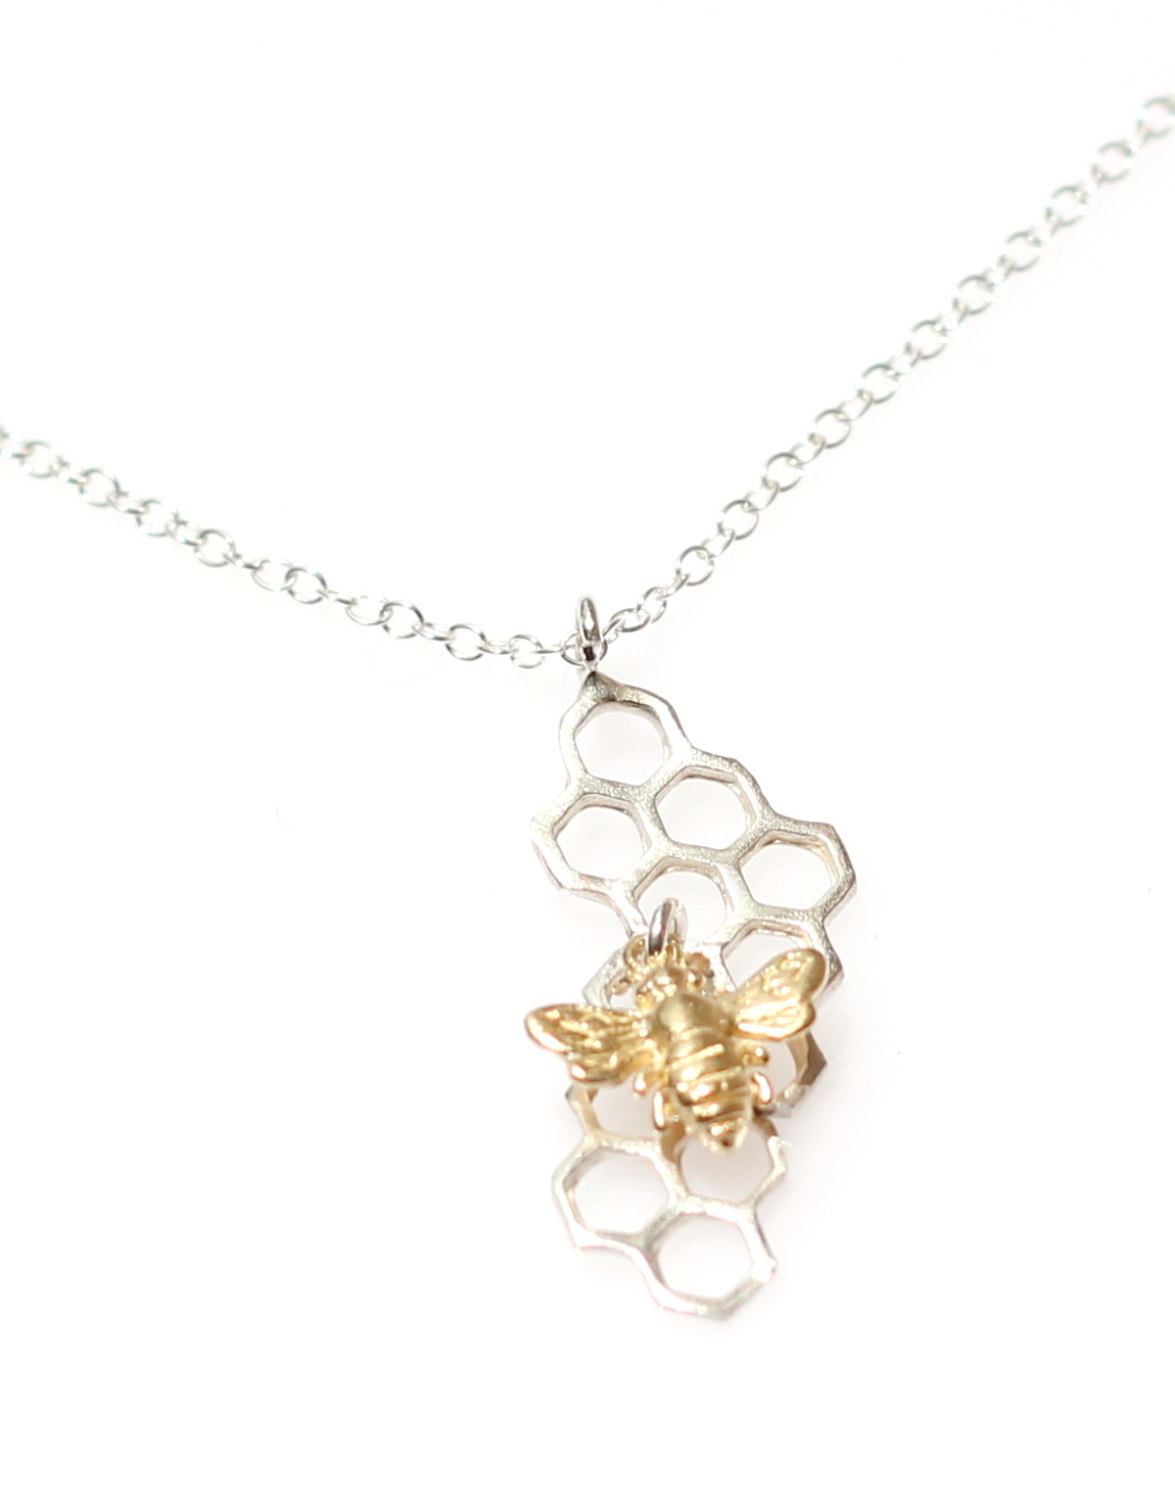 Sterling silver honeychoneycomb necklace with bee charm honeycomb sterling silver honeychoneycomb necklace with bee charm honeycomb charm honeycomb pendant with bee charm honeycomb charm save the bees aloadofball Choice Image